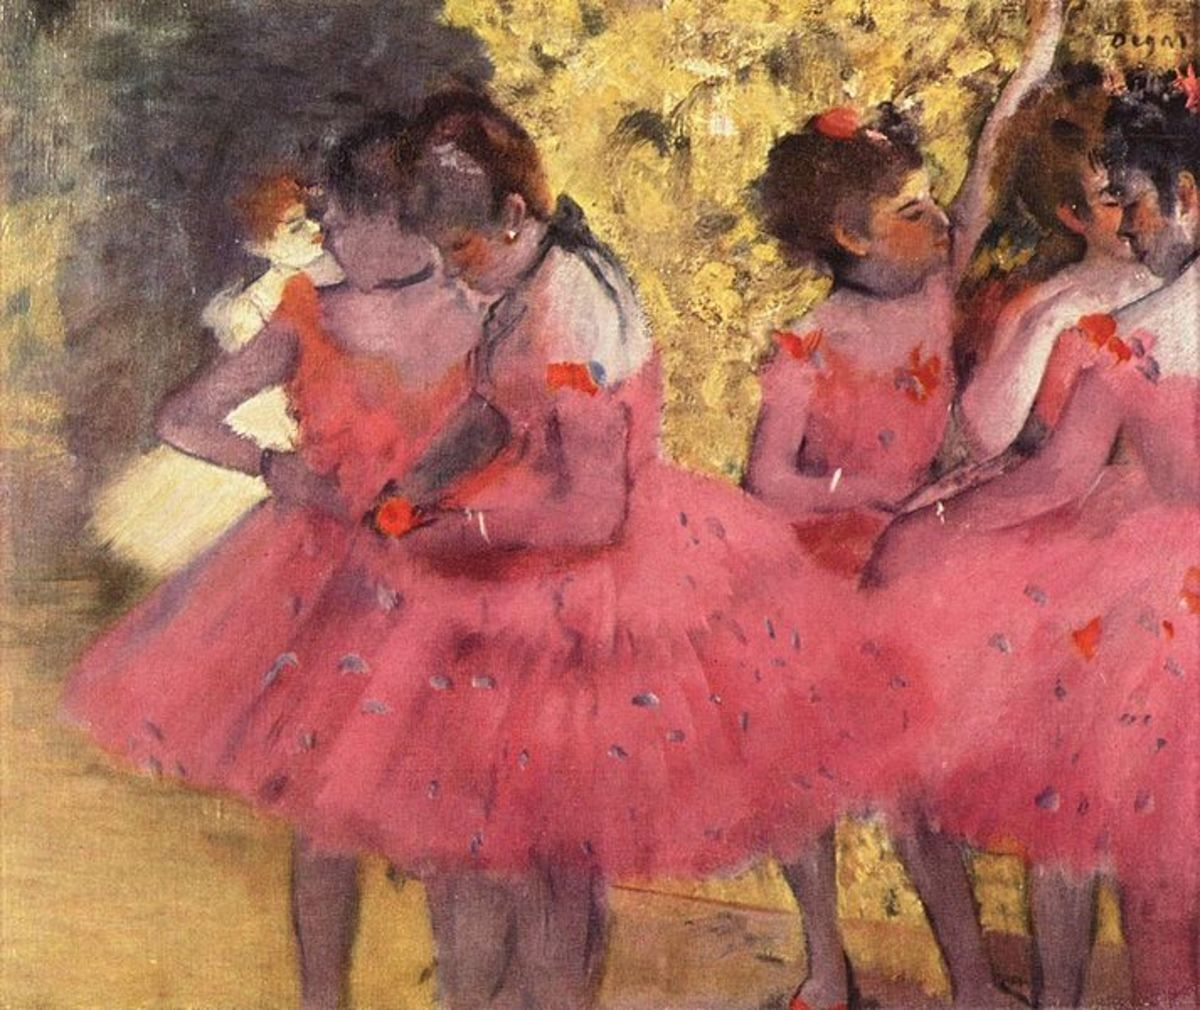 Dancers in Pink between scenes, 1884 by Edgar Degas. This painting hangs in the Ny Carlsberg Glypotek in Copenhagen. Image courtesy of Wiki Commons